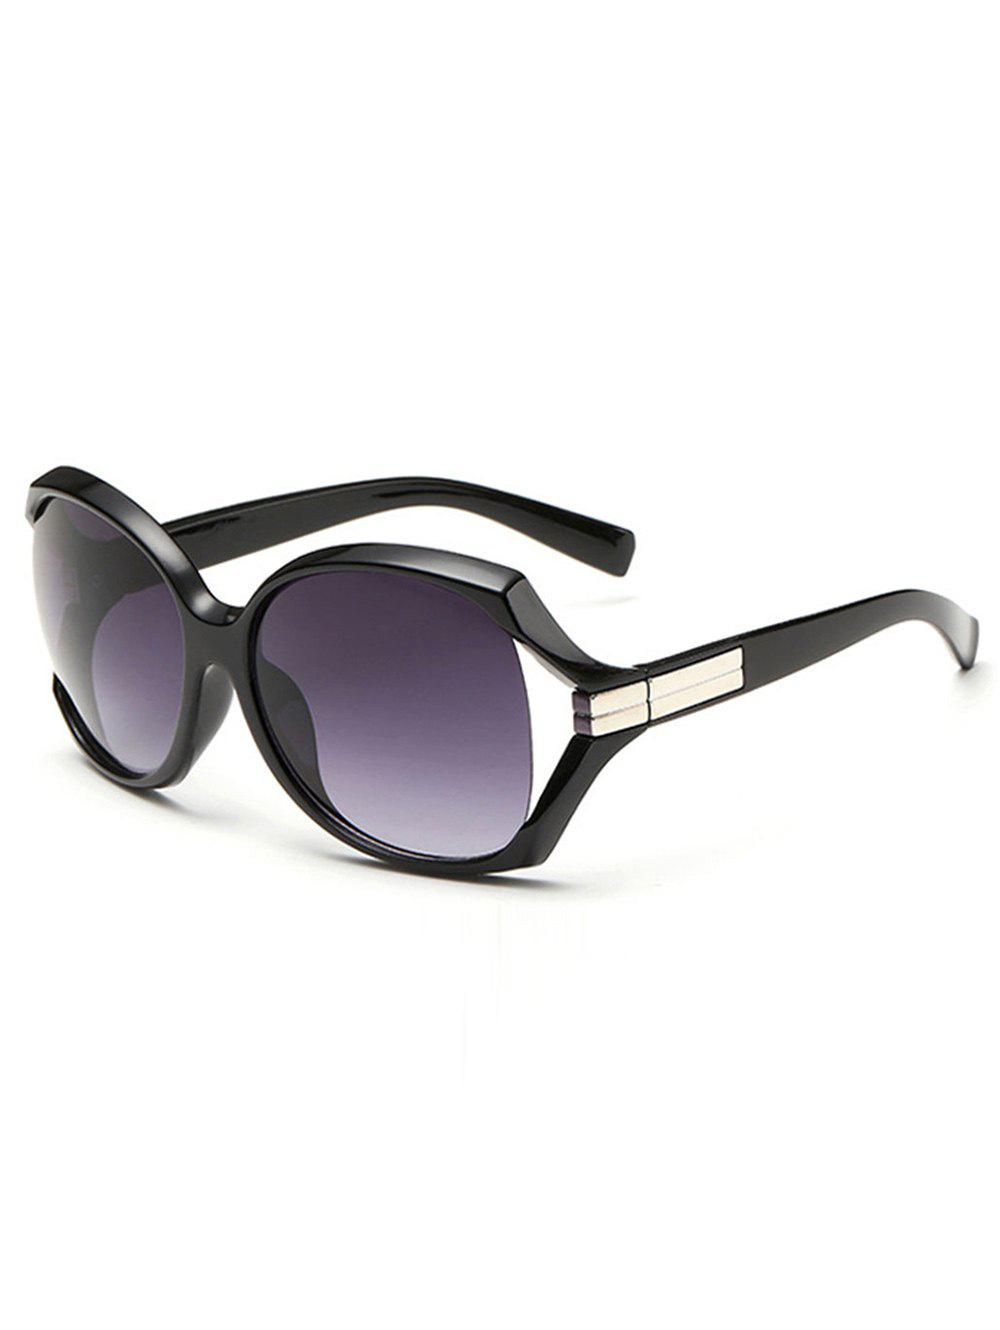 Discount Anti Fatigue Full Frame Oversized Sunglasses